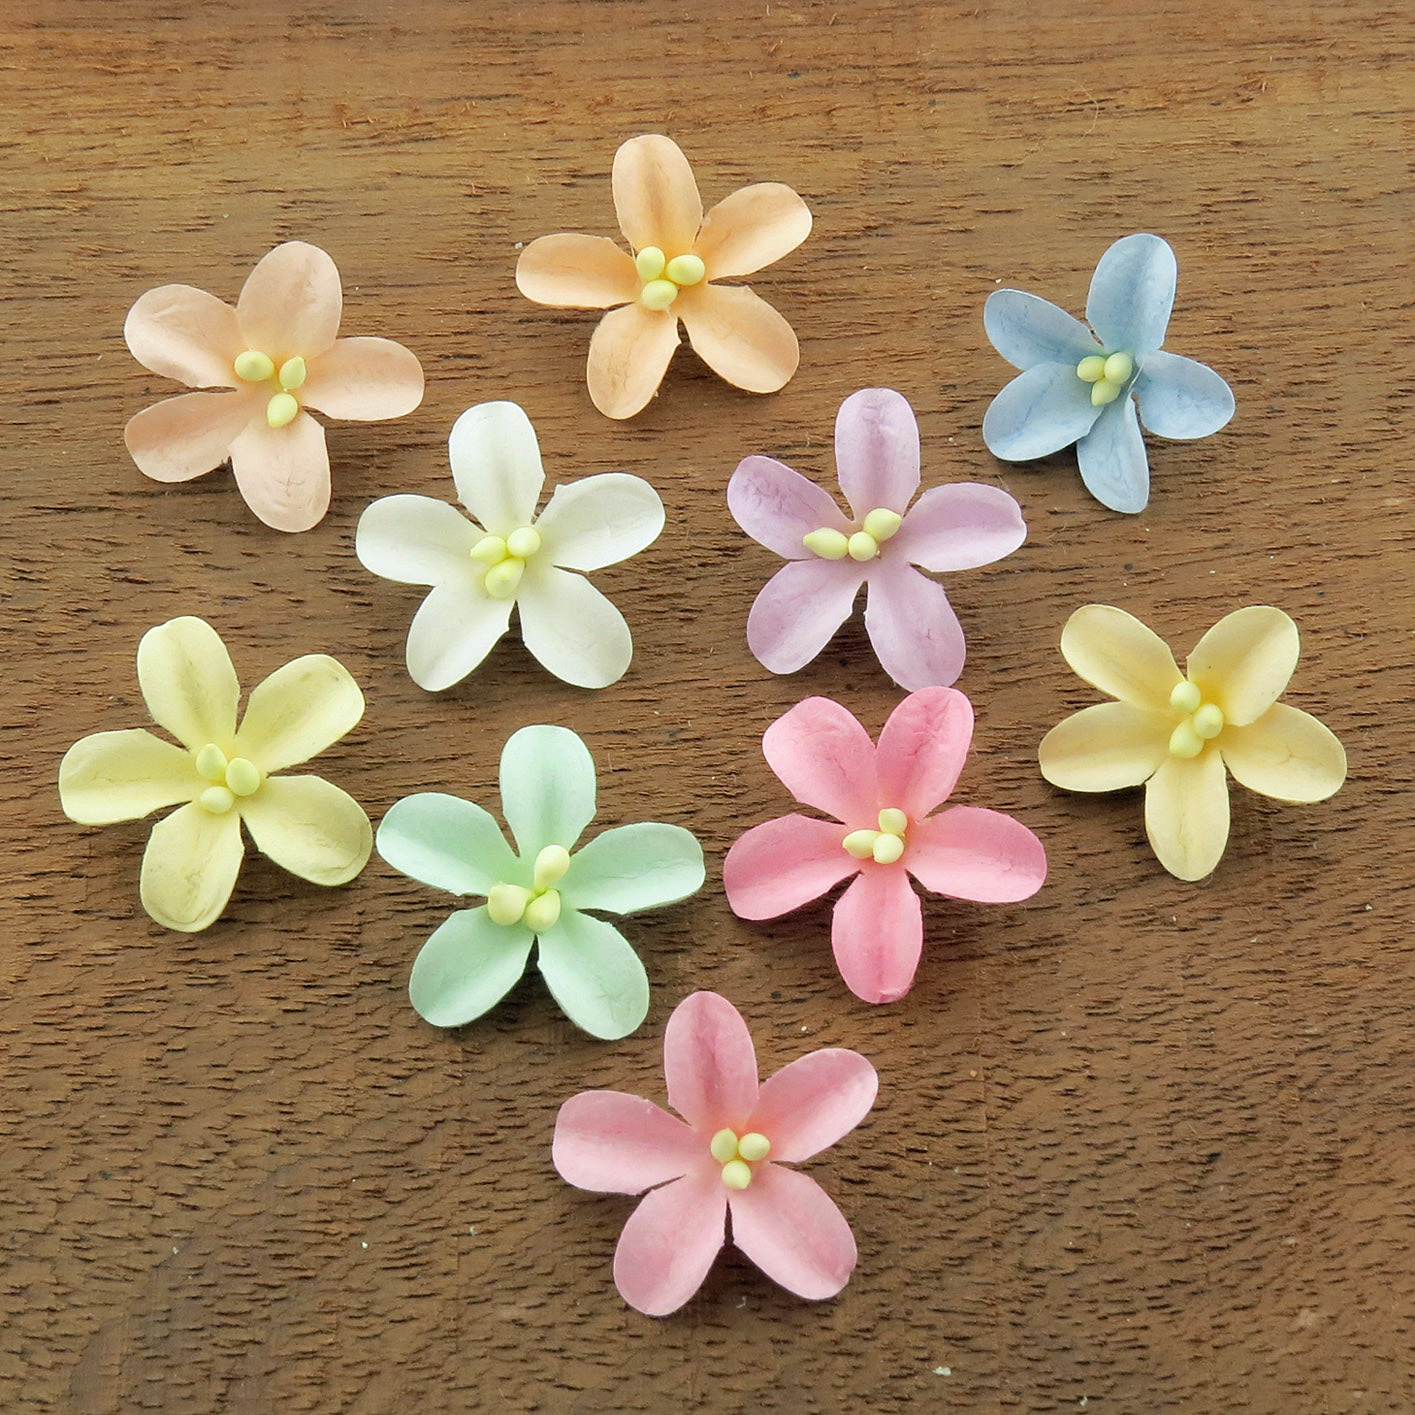 MIXED PASTEL COTTON STEM MULBERRY PAPER FLOWERS - SET D